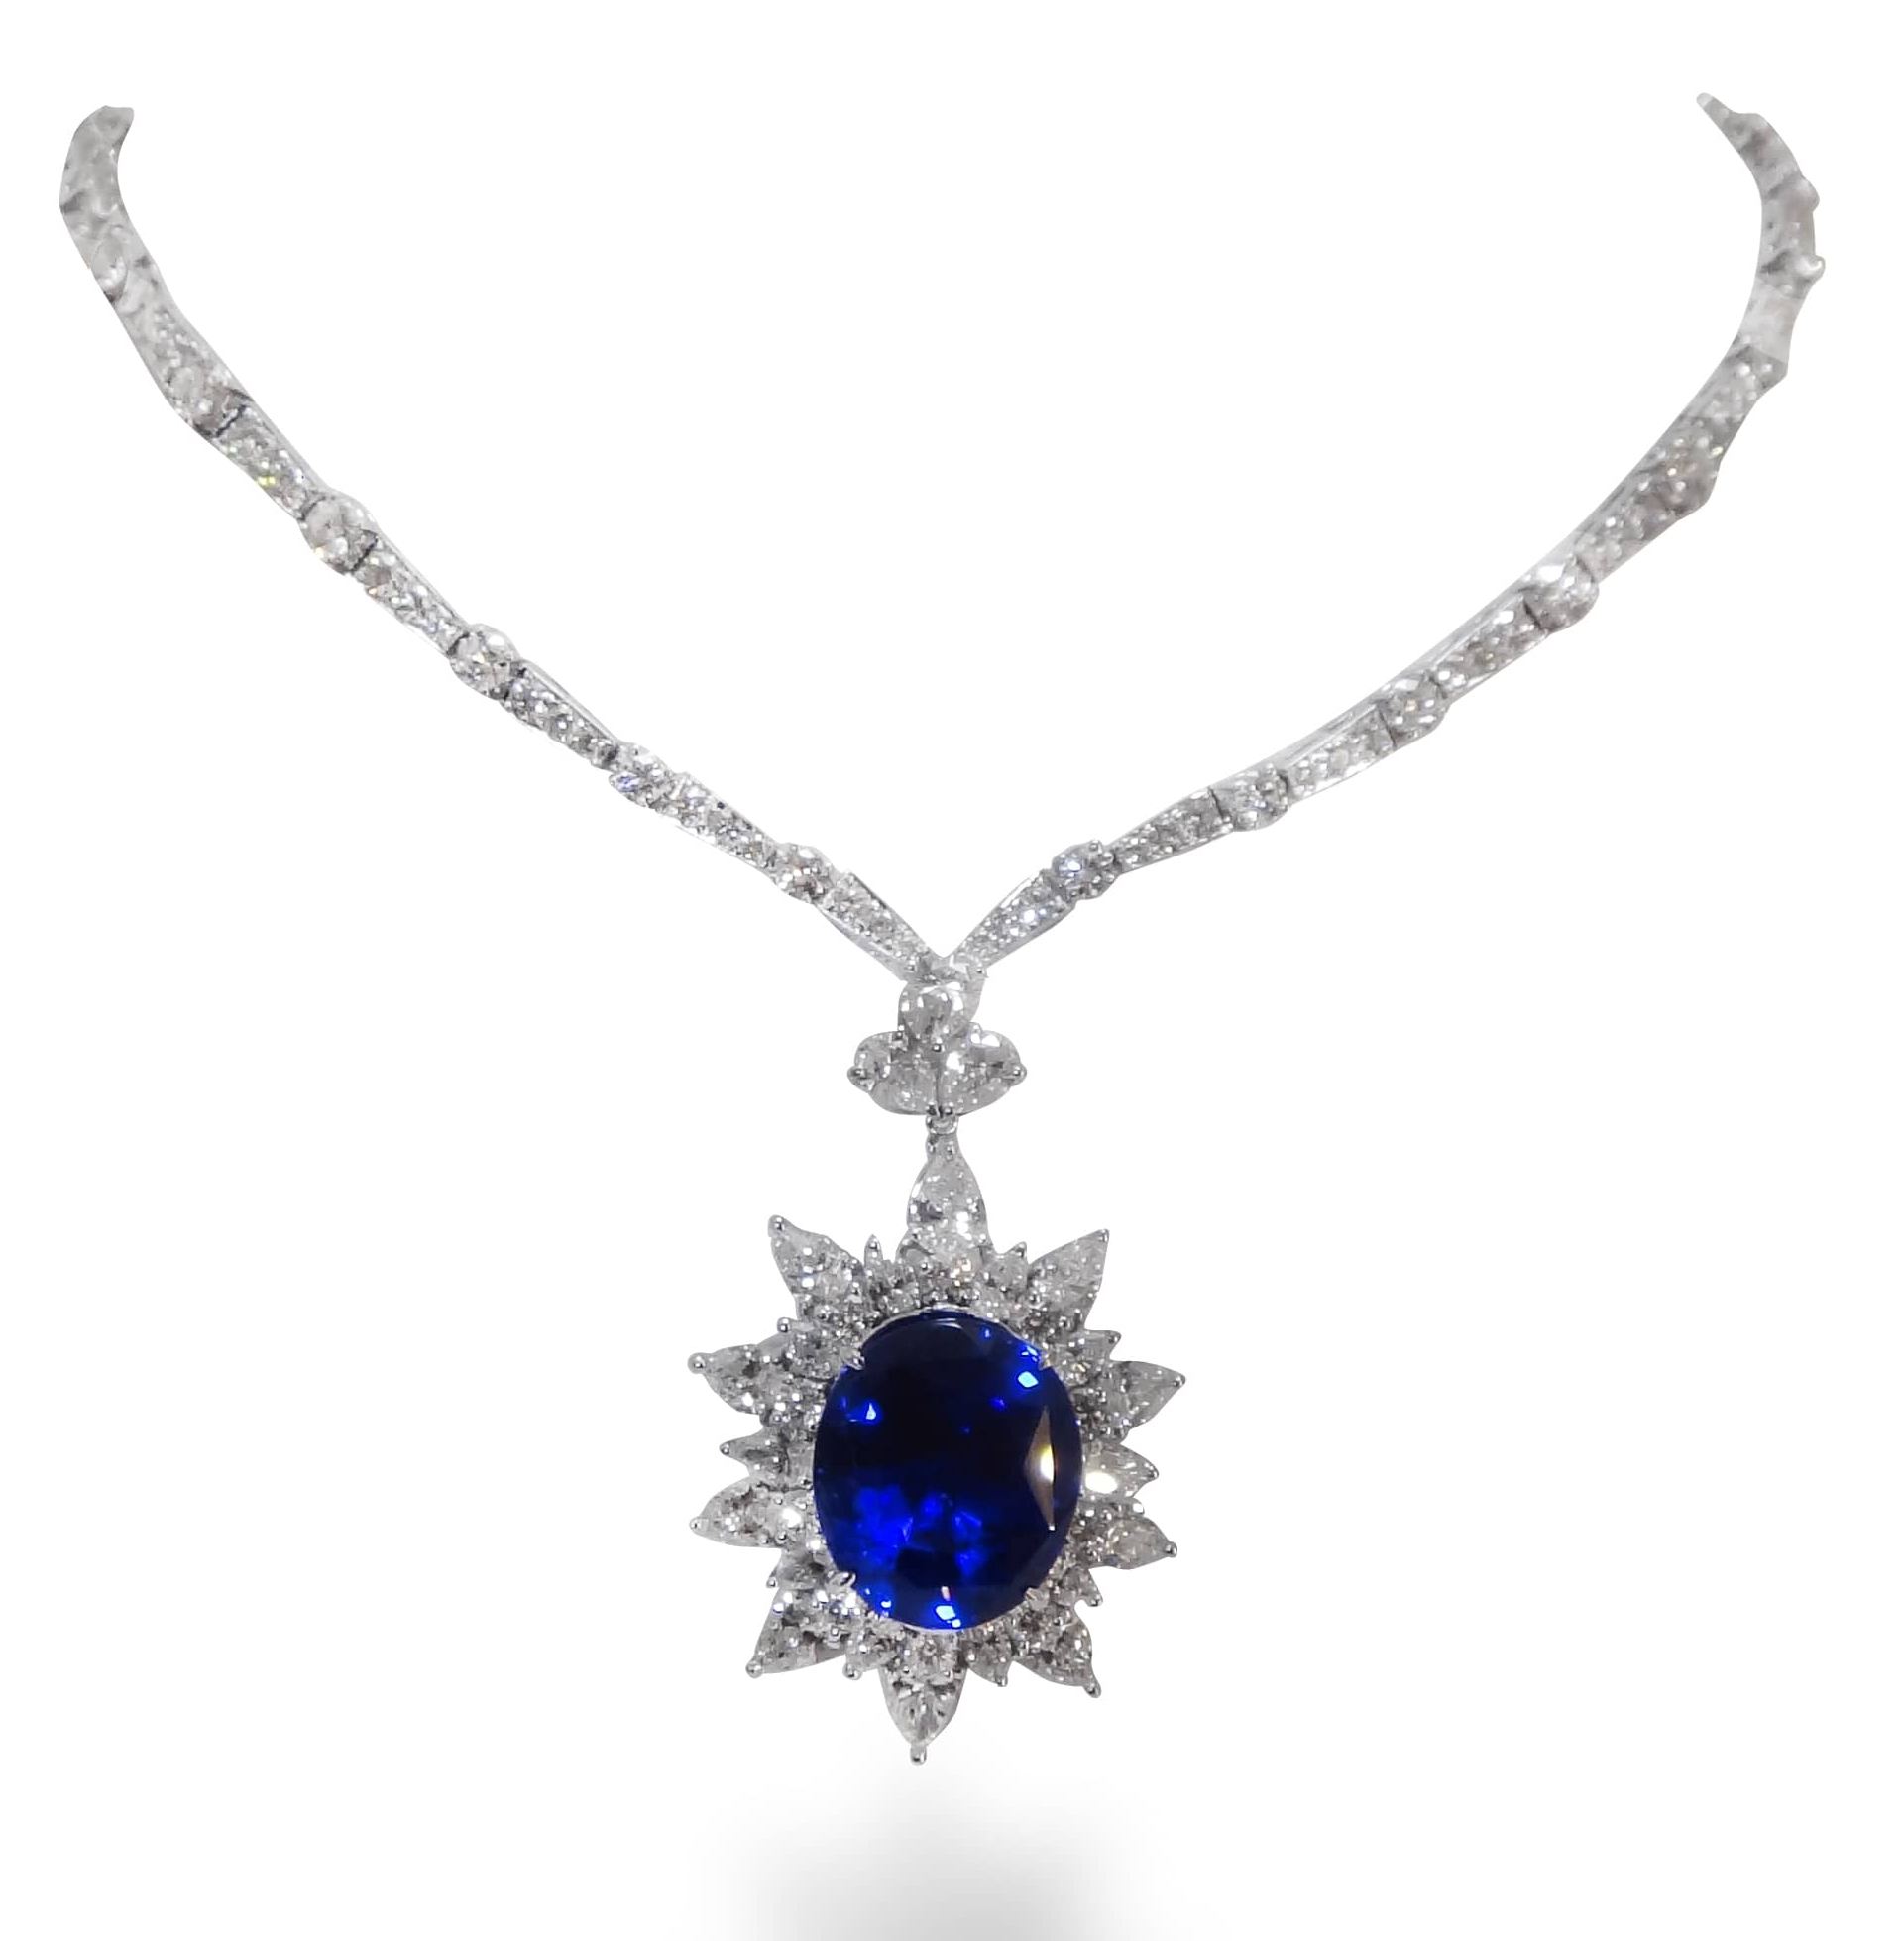 BURMA SAPPHIRE & DIAMOND NECKLACE WITH REMOVABLE PENDANT BESPOKE FINE JEWELLERY BY SHAHINA HATTA